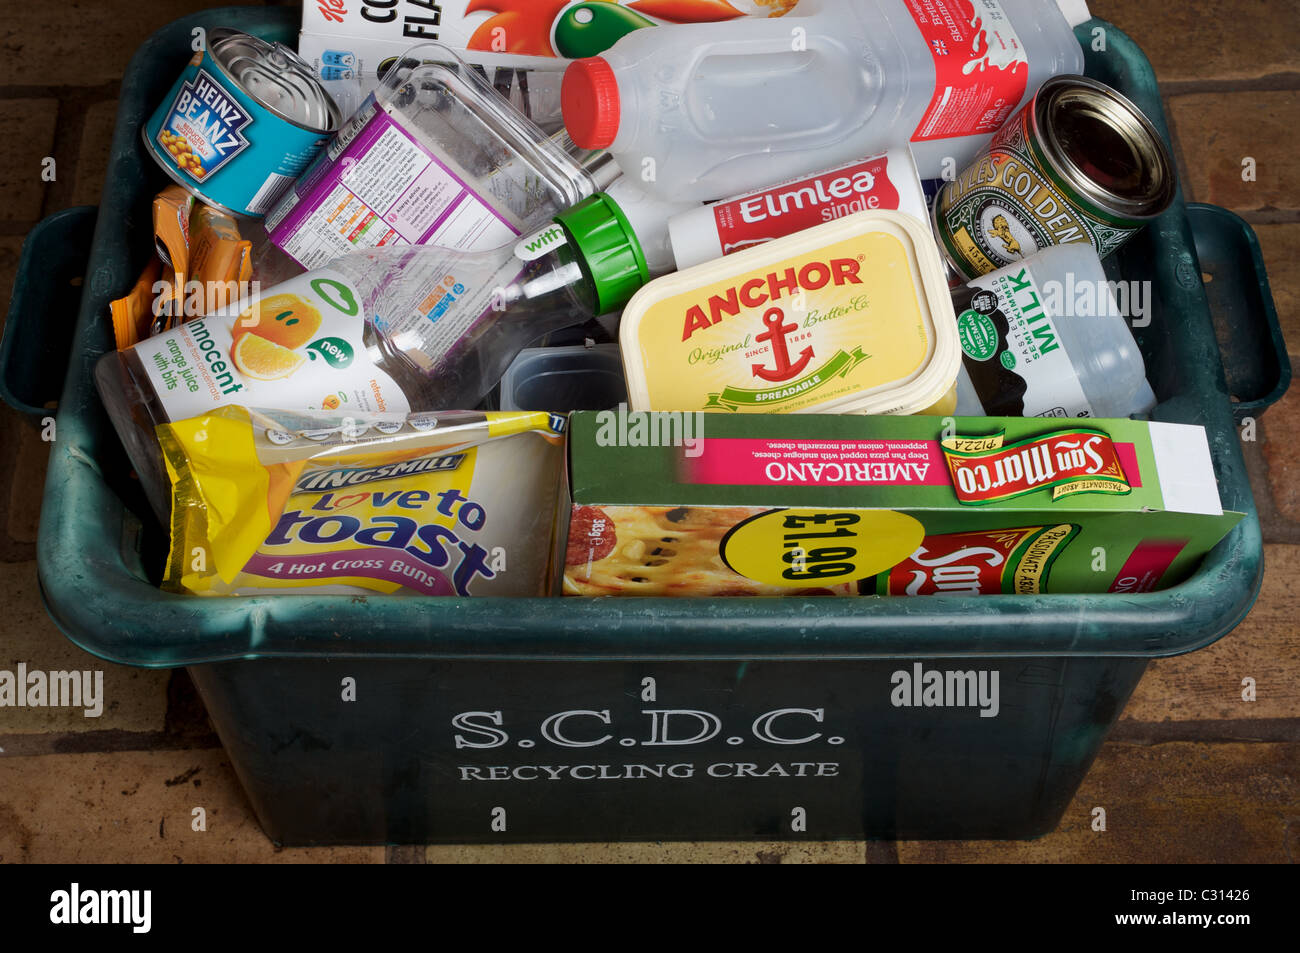 Household waste in recycling crate - Stock Image